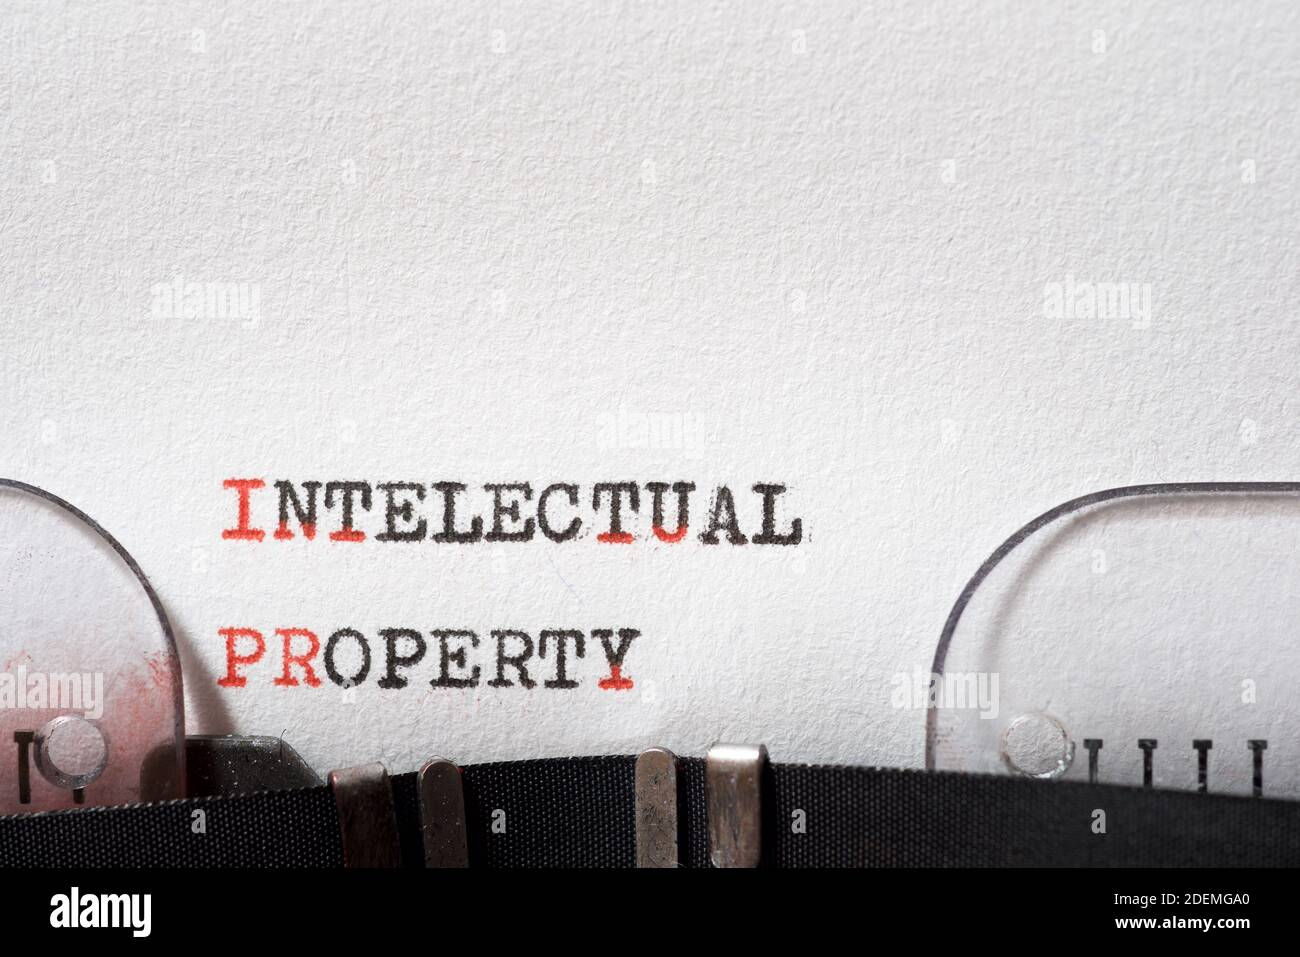 Intellectual property phrase written with a typewriter. Stock Photo